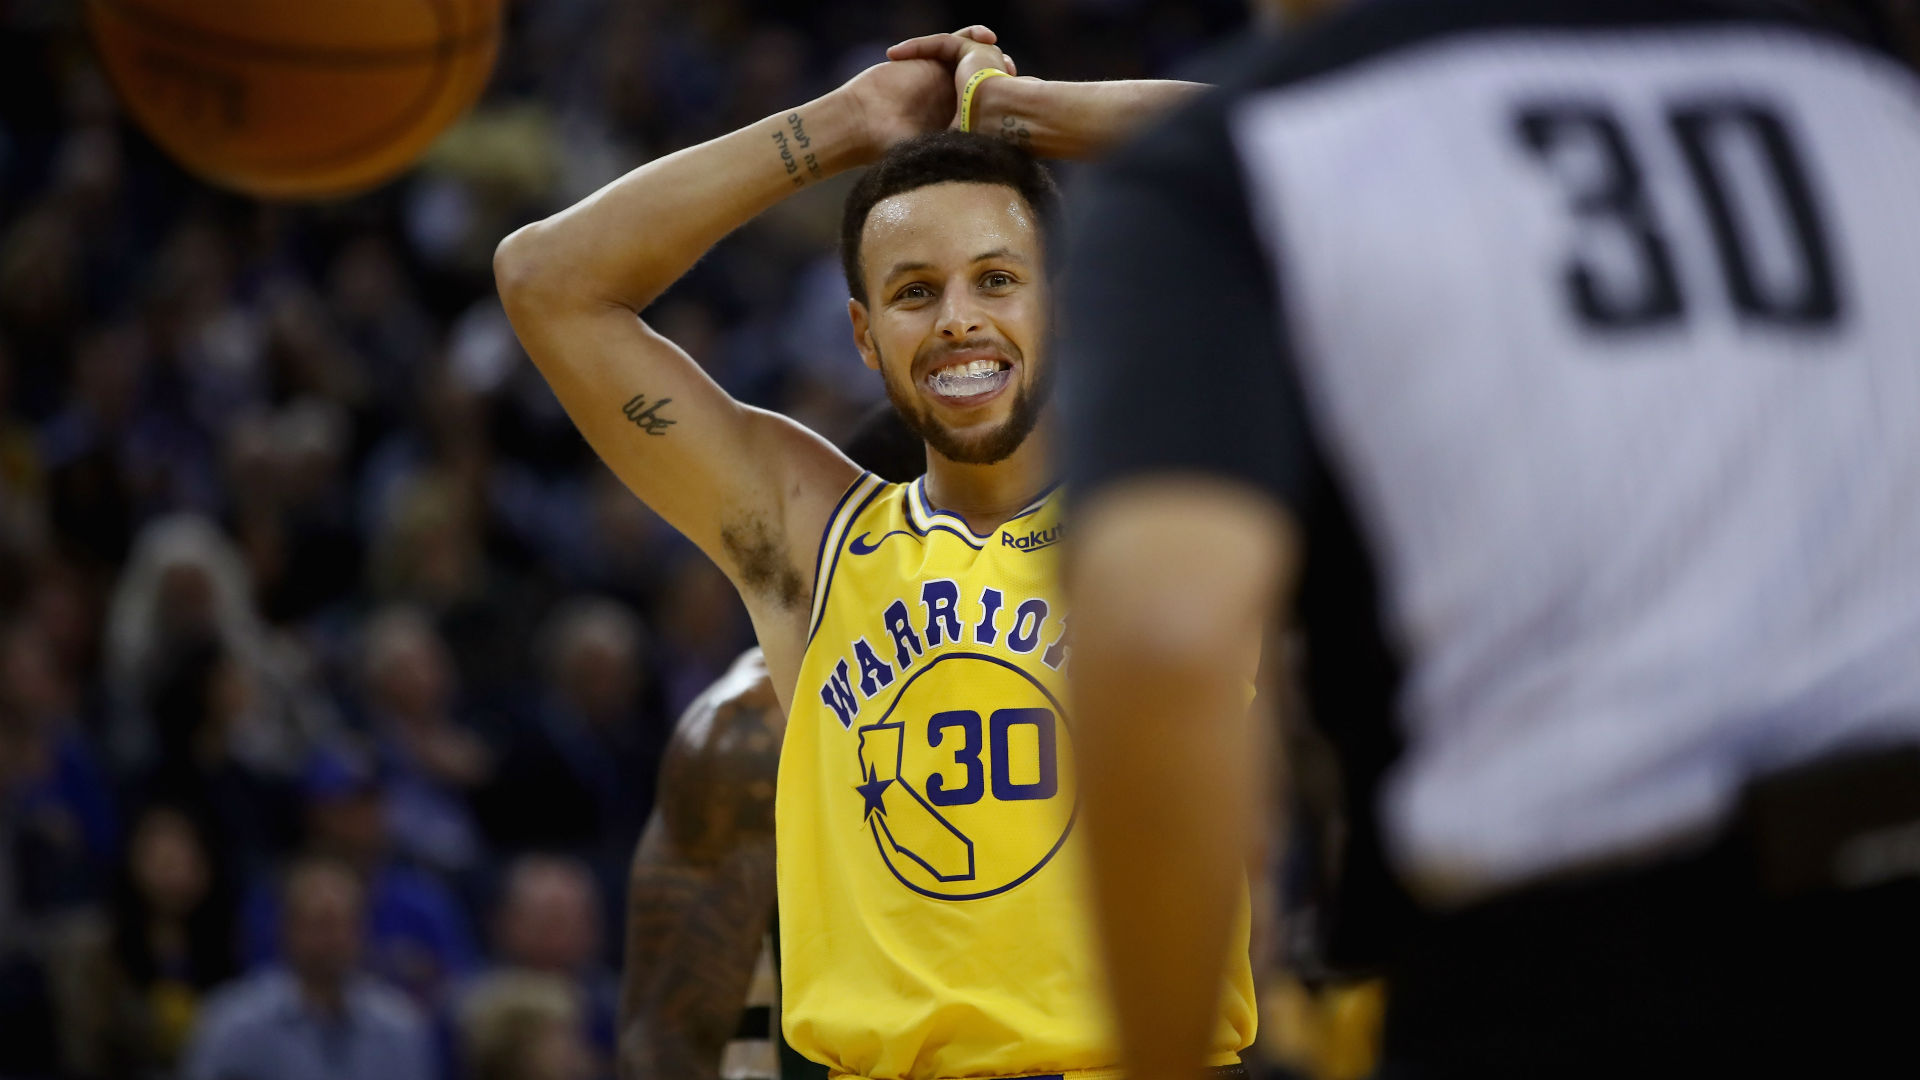 Stephen Curry injury update: Warriors coach Steve Kerr encouraged after MRI results